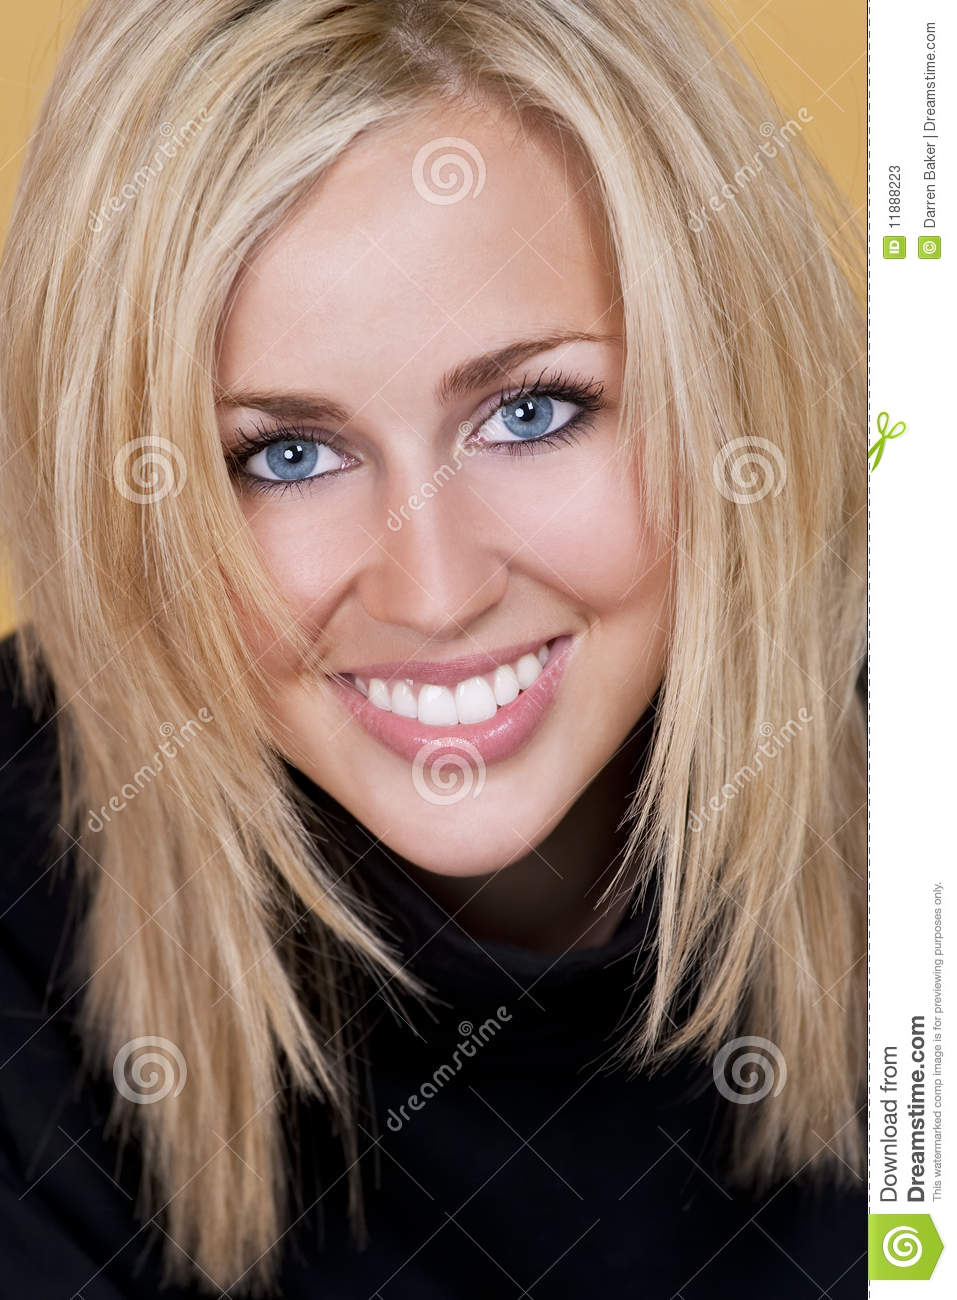 Happy Blond Woman With Perfect Teeth and Smile